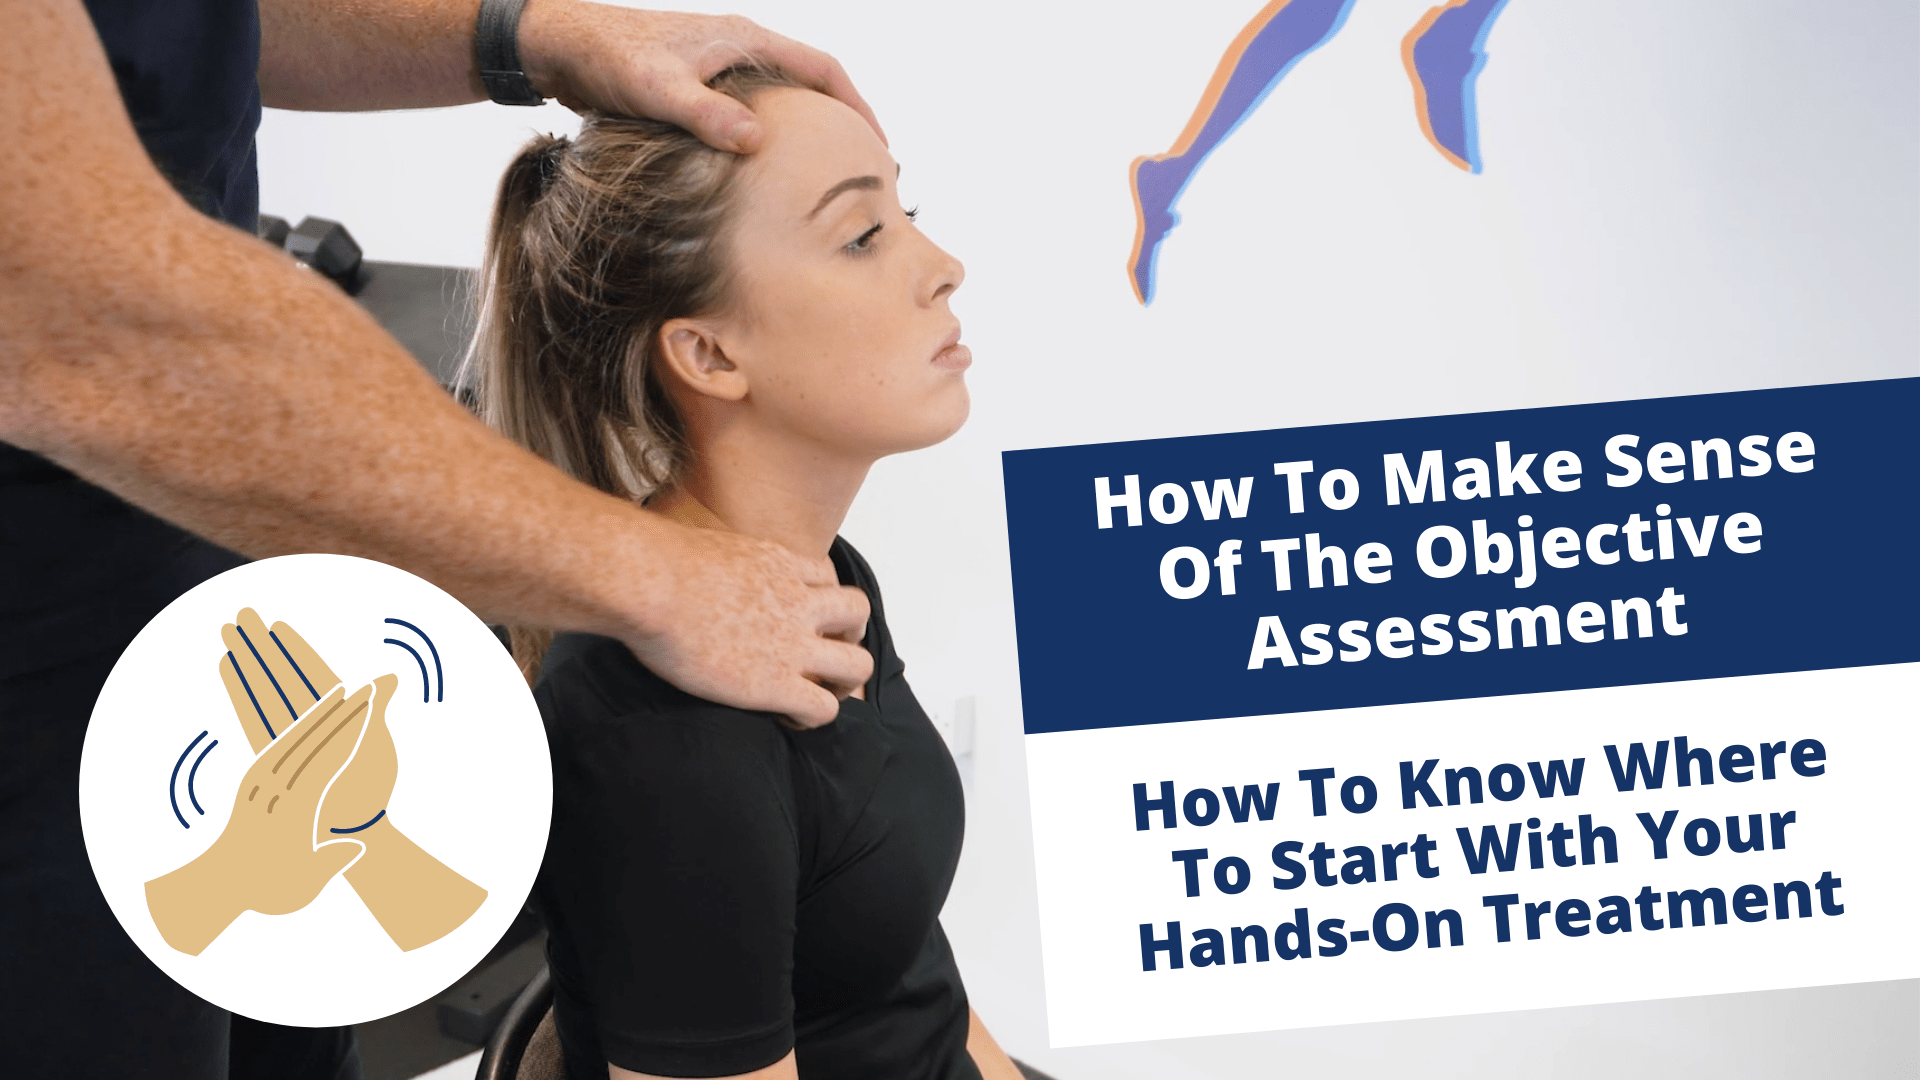 How To Know Where To Start With Your Hands-On Treatment